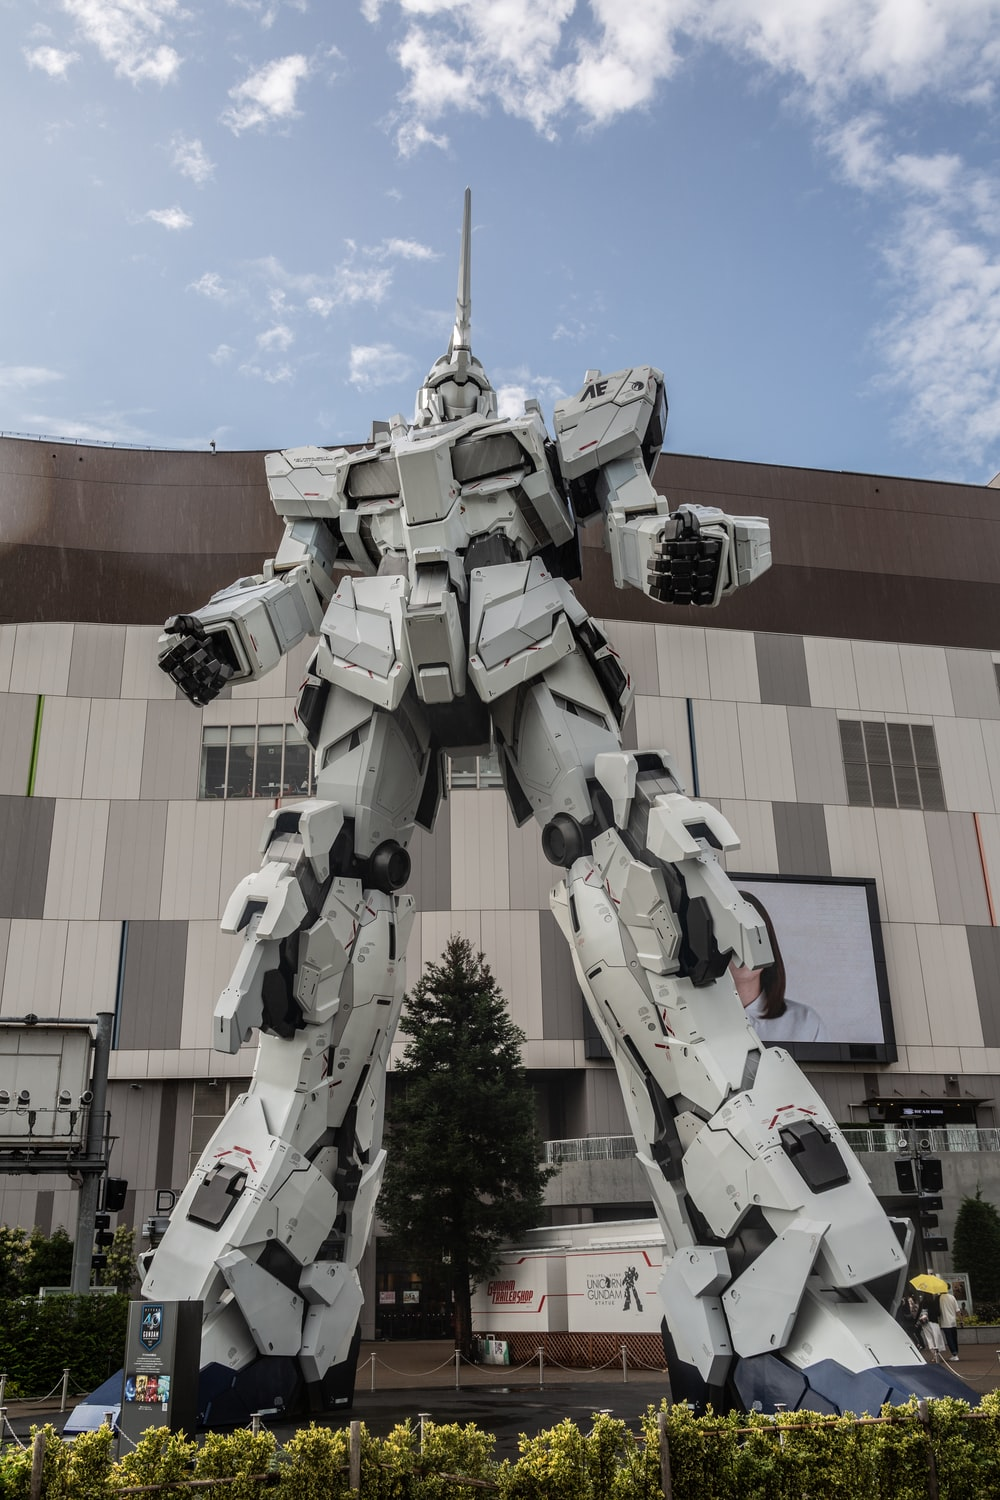 white Gundam statue in front of building